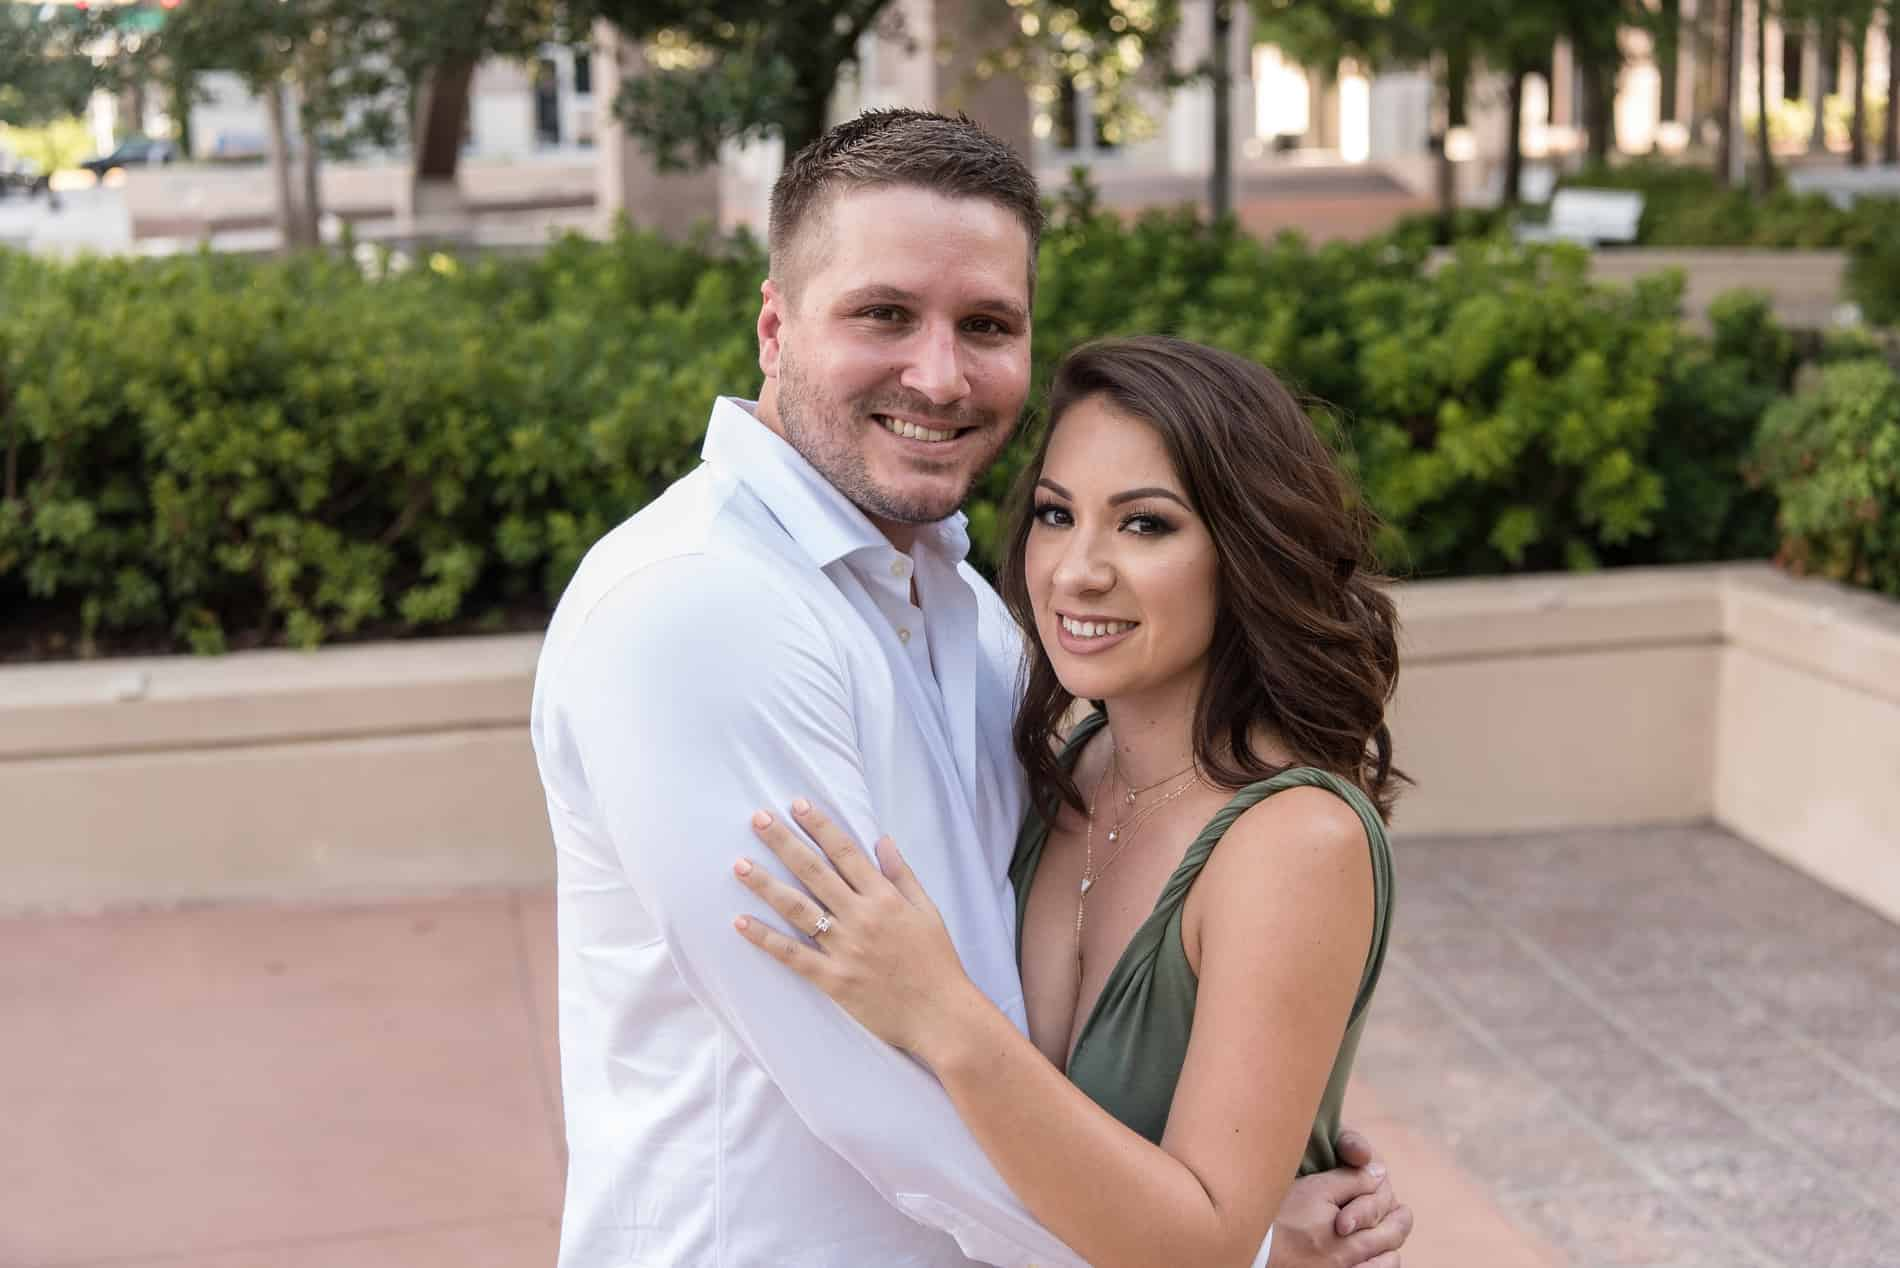 The couple is in love as they get their Dr Phillips Engagement Photos